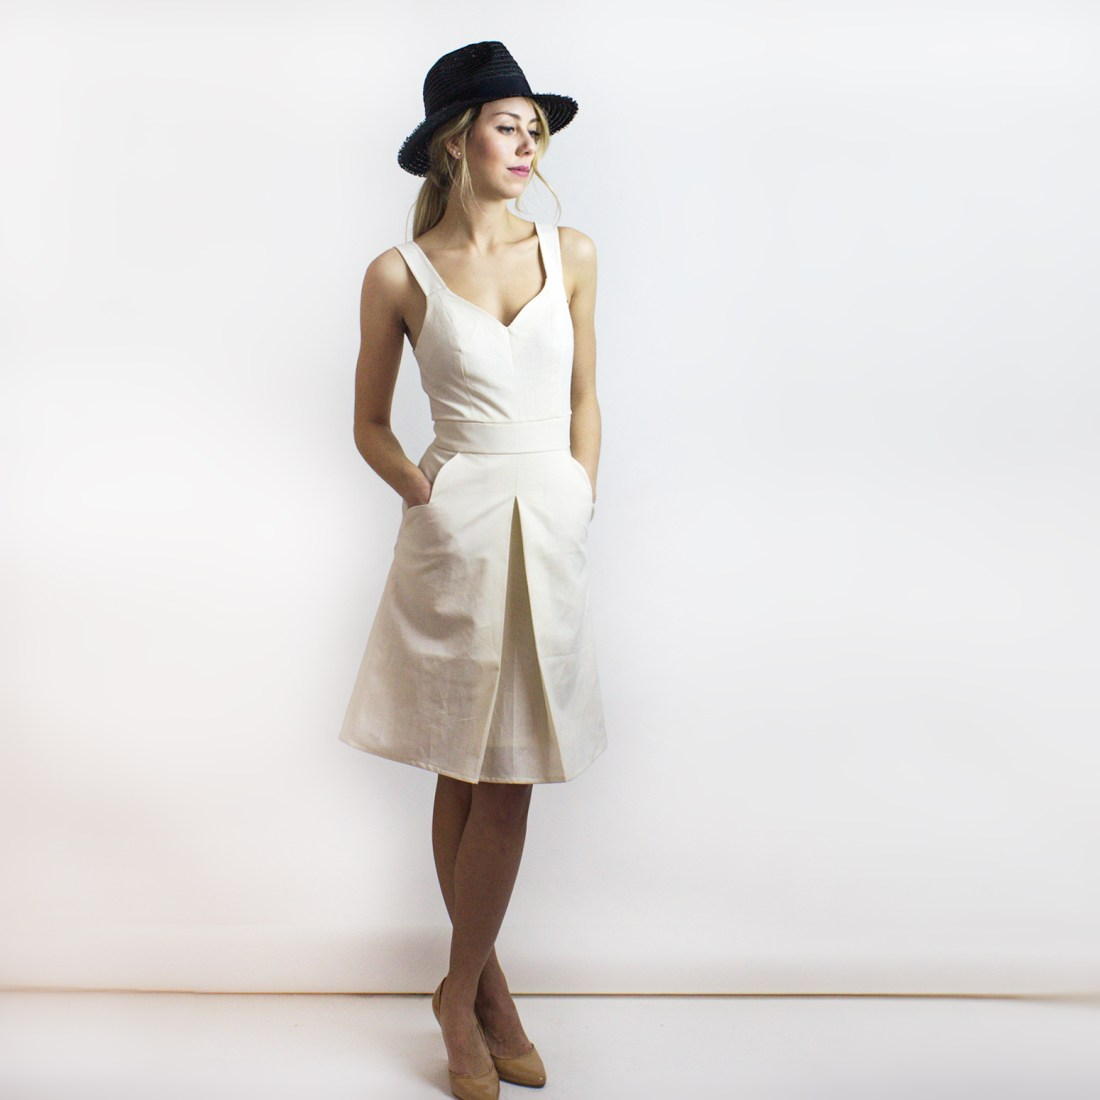 Hamptons Organic Cotton & Organic Linen Dress from Simone's Rose SS16 Collection | eco-conscious and sustainable women's fashion label made in downtown Toronto